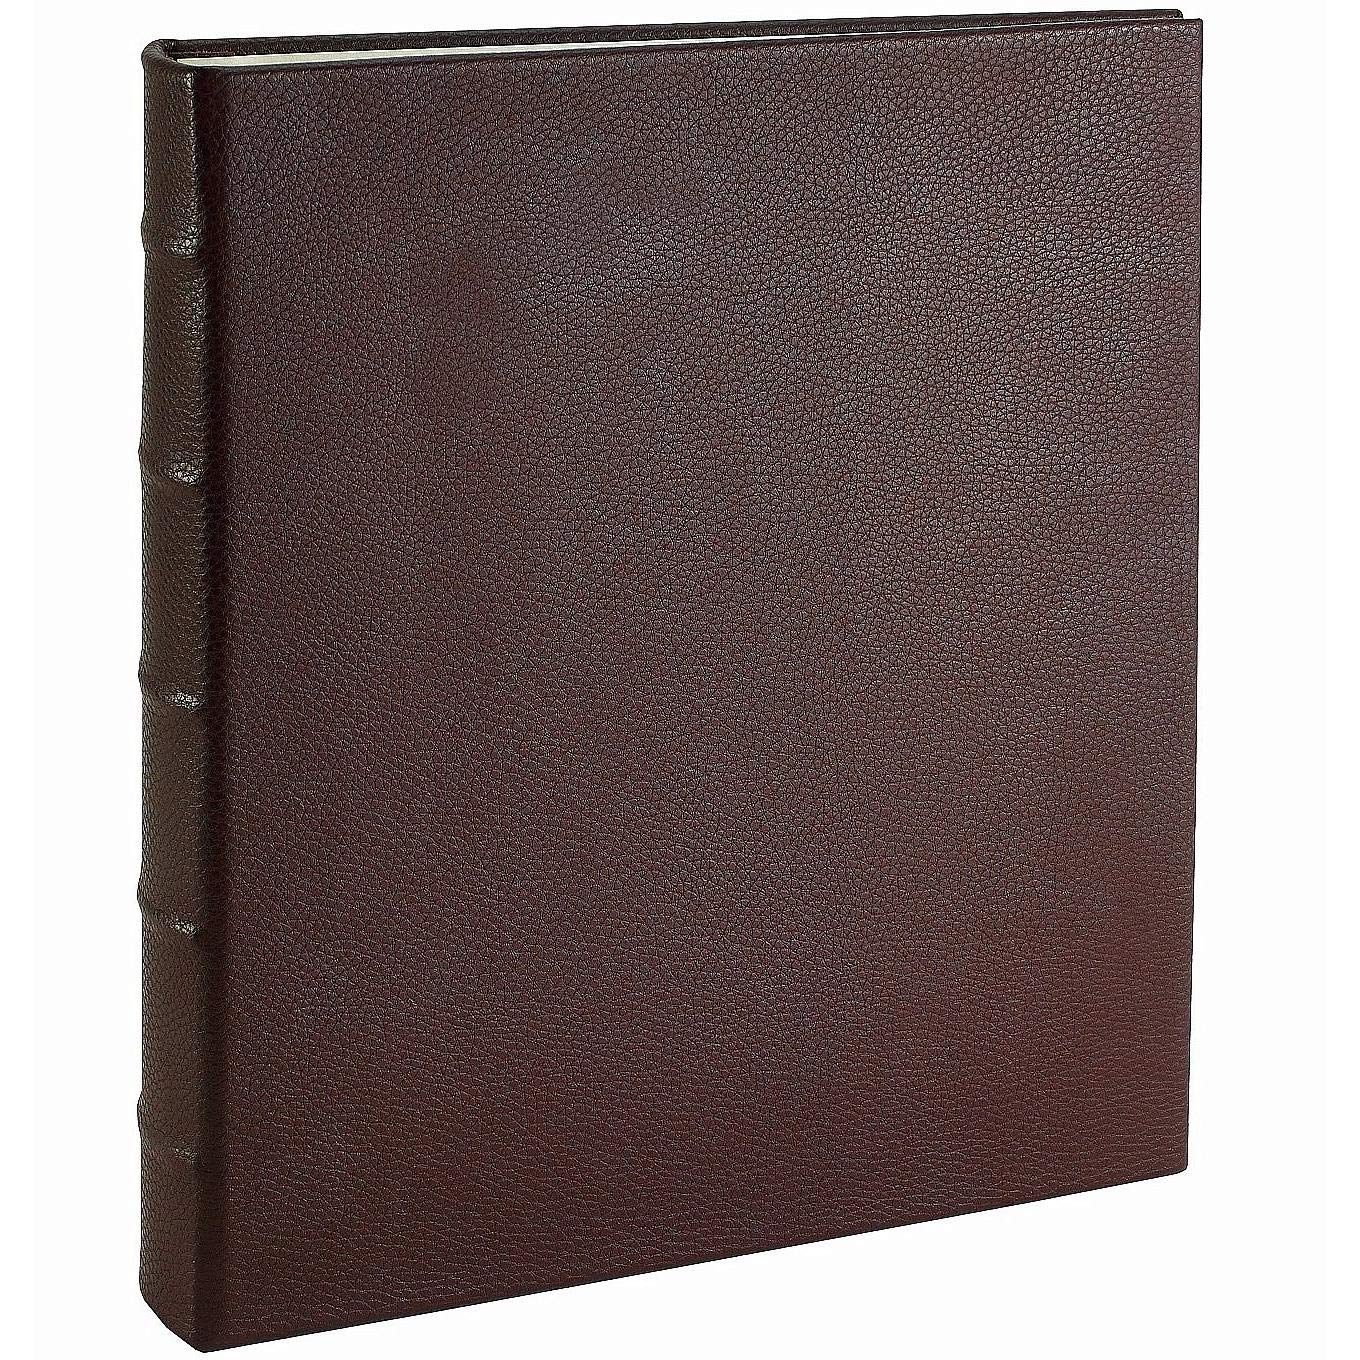 Post Impressions™ System Standard 3-ring Binder unfilled Pebble-Brown Eco-leather - 8.5x11 by Graphic Image